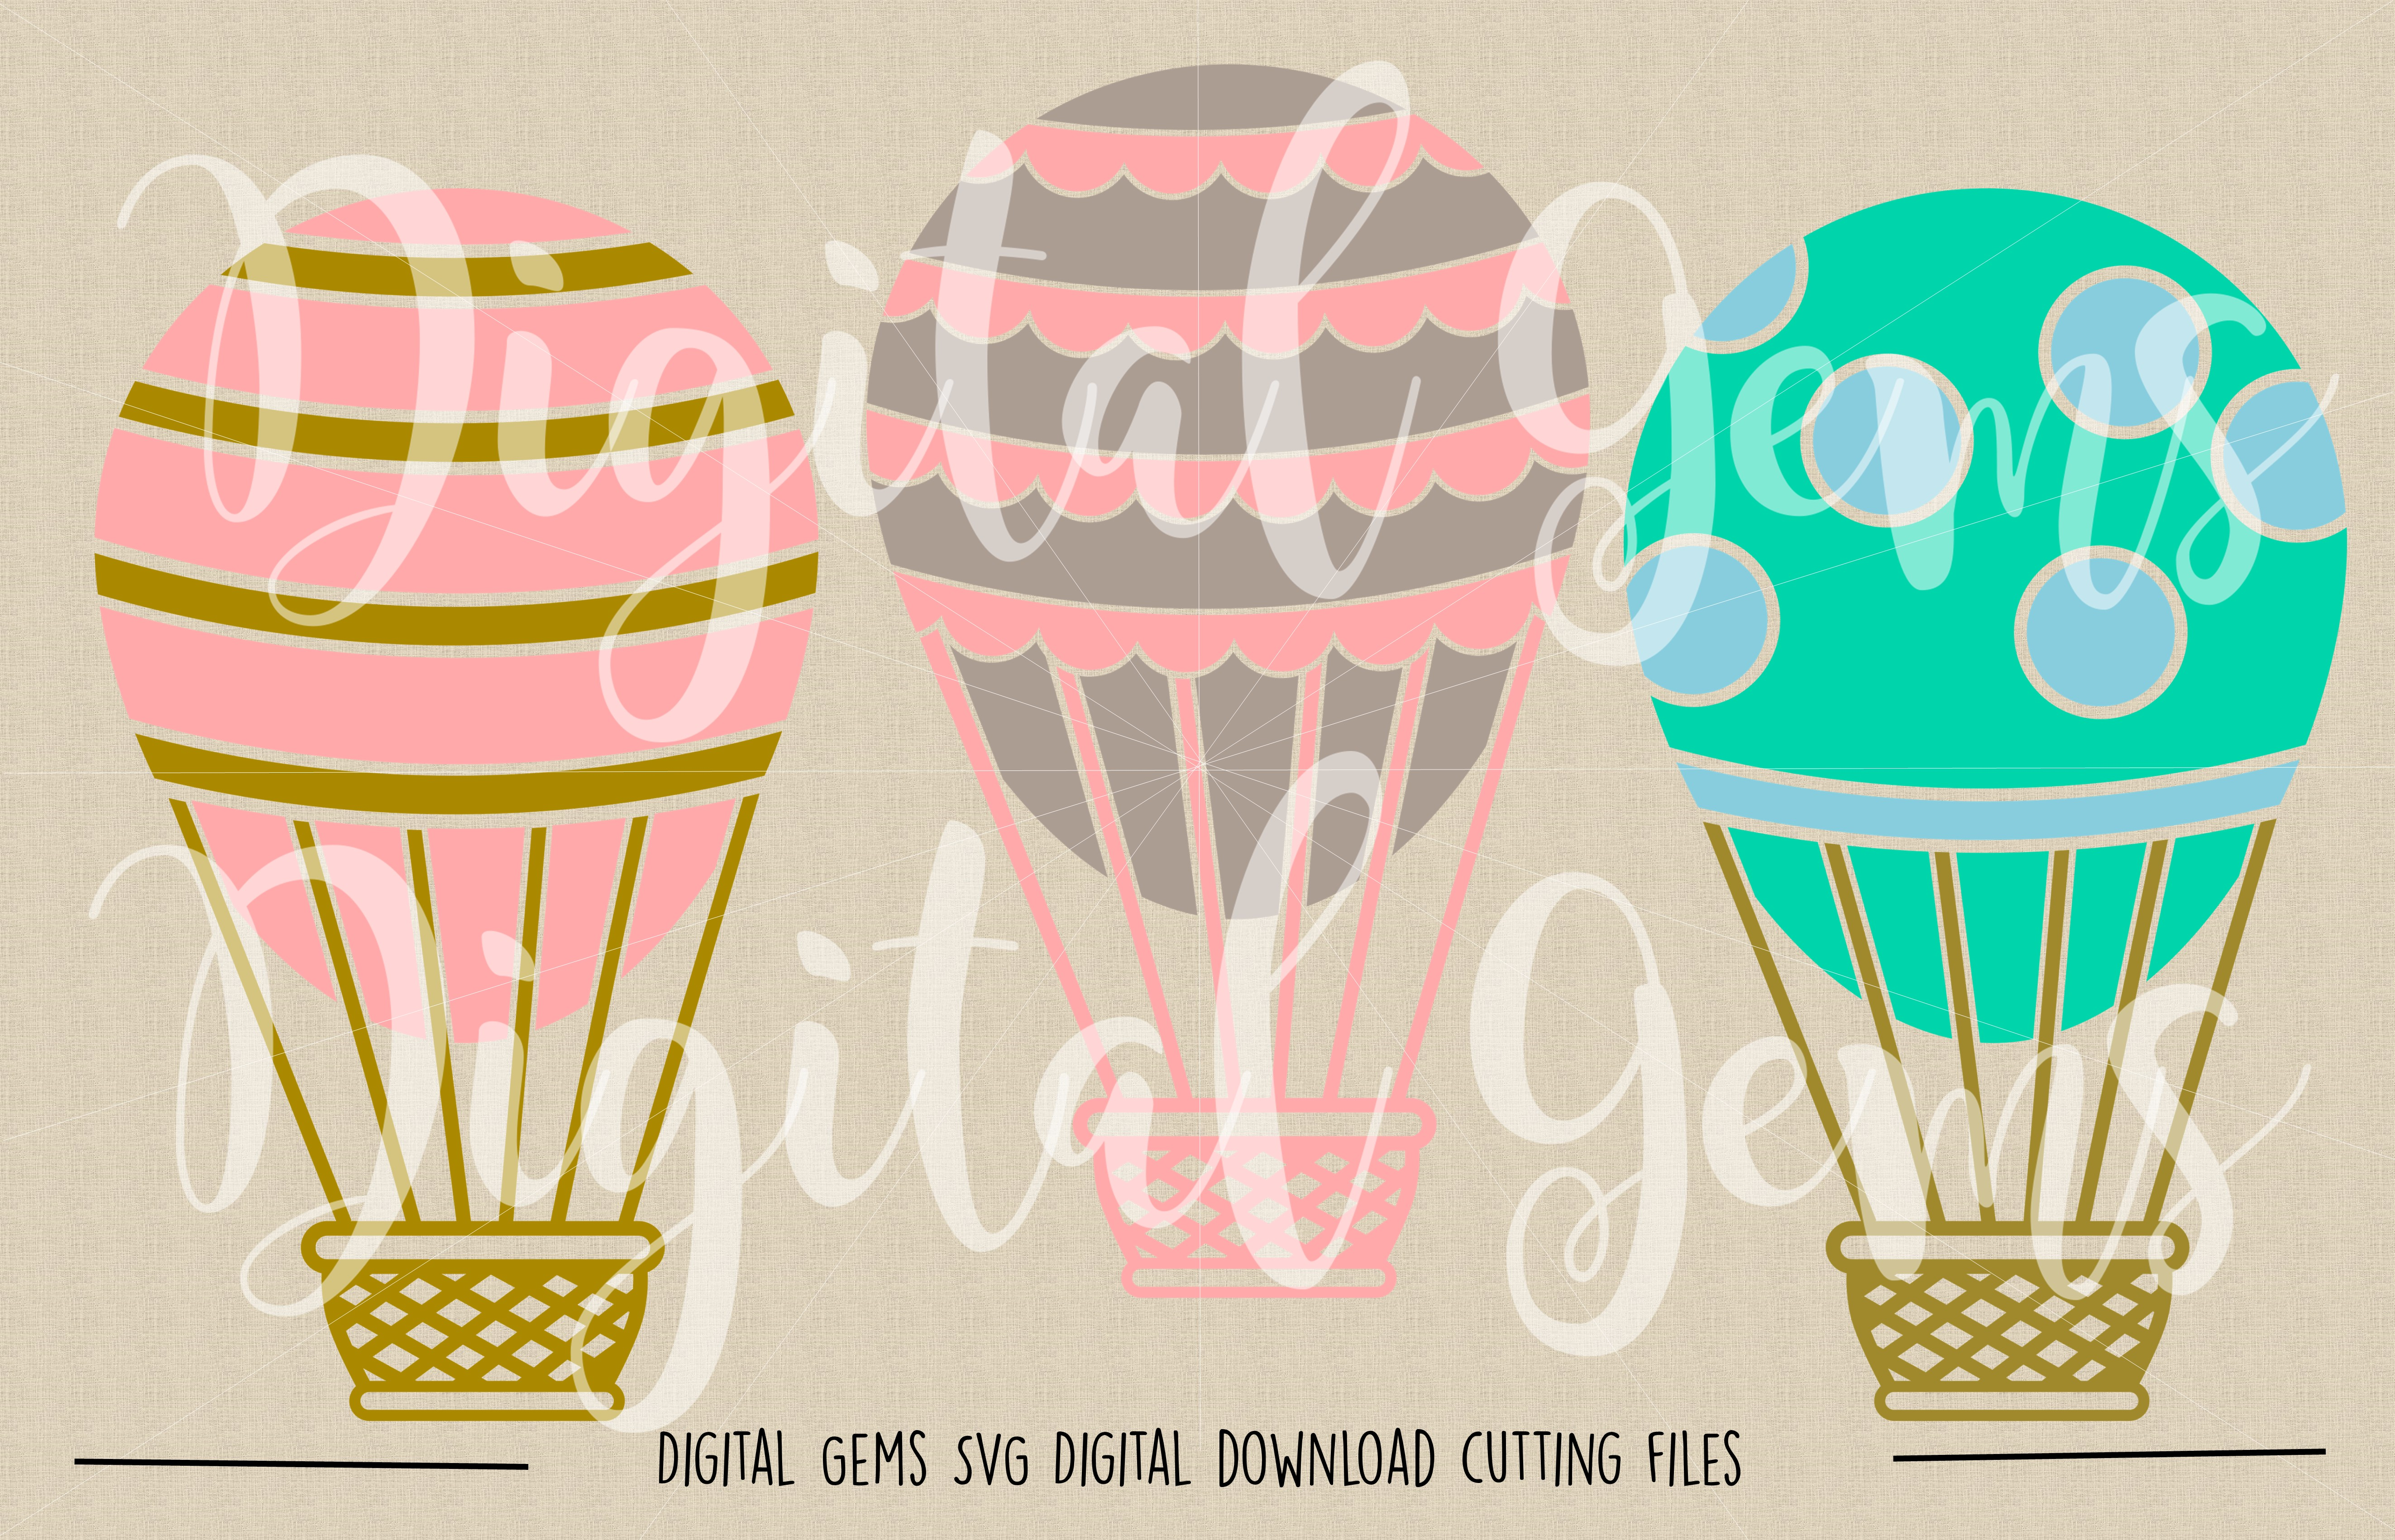 Hot Air Balloon SVG / PNG / EPS / DXF Files example image 2